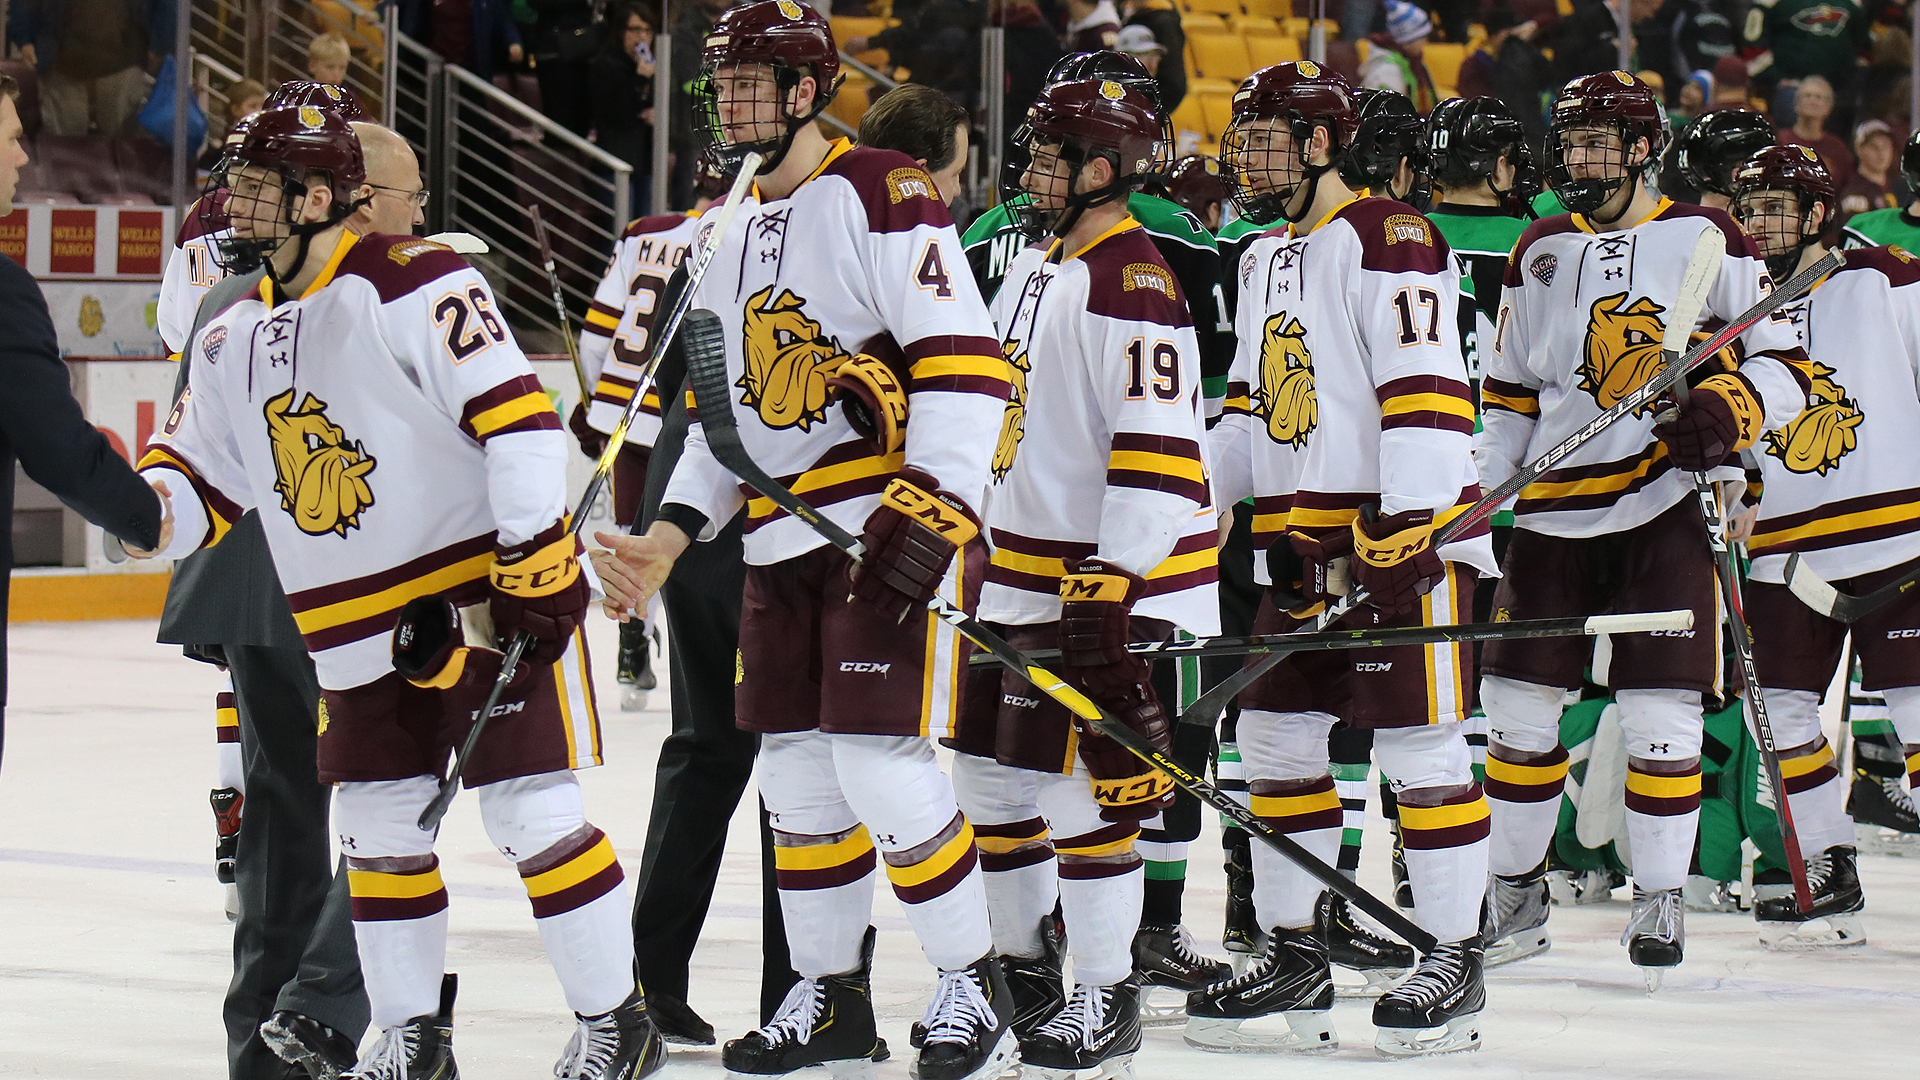 umd dips to no. 4 in latest uscho poll - minnesota duluth athletics